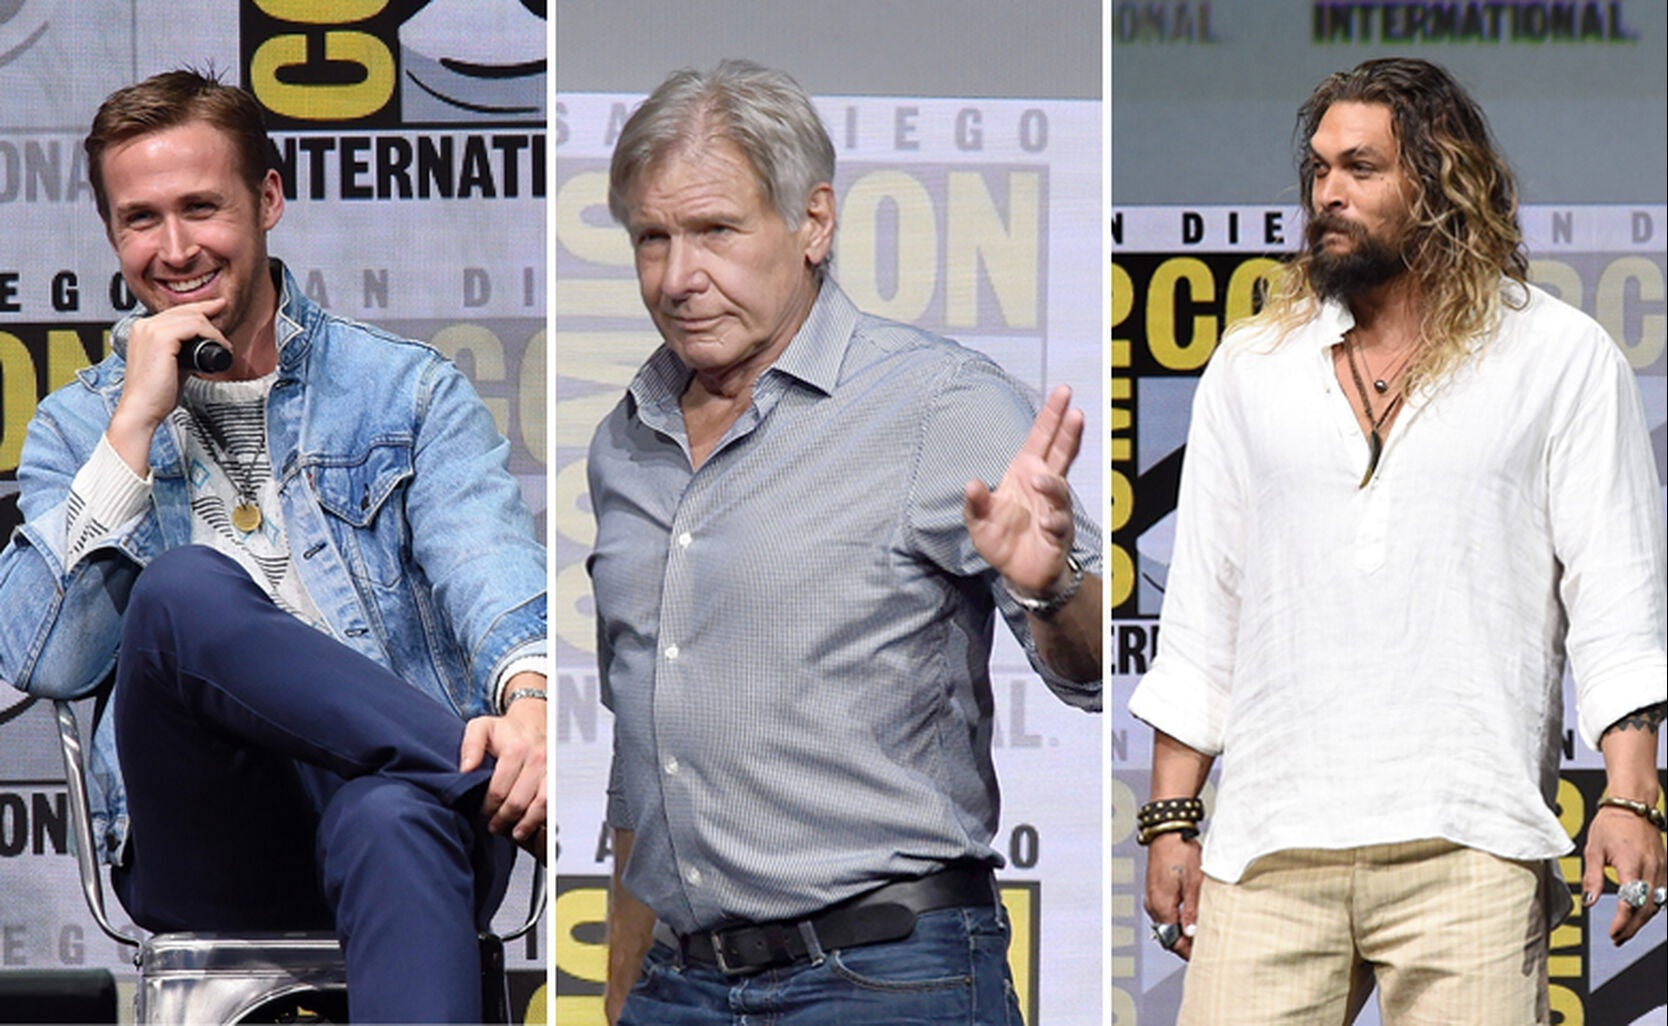 Ryan Gosling, Harrison Ford and Jason Momoa